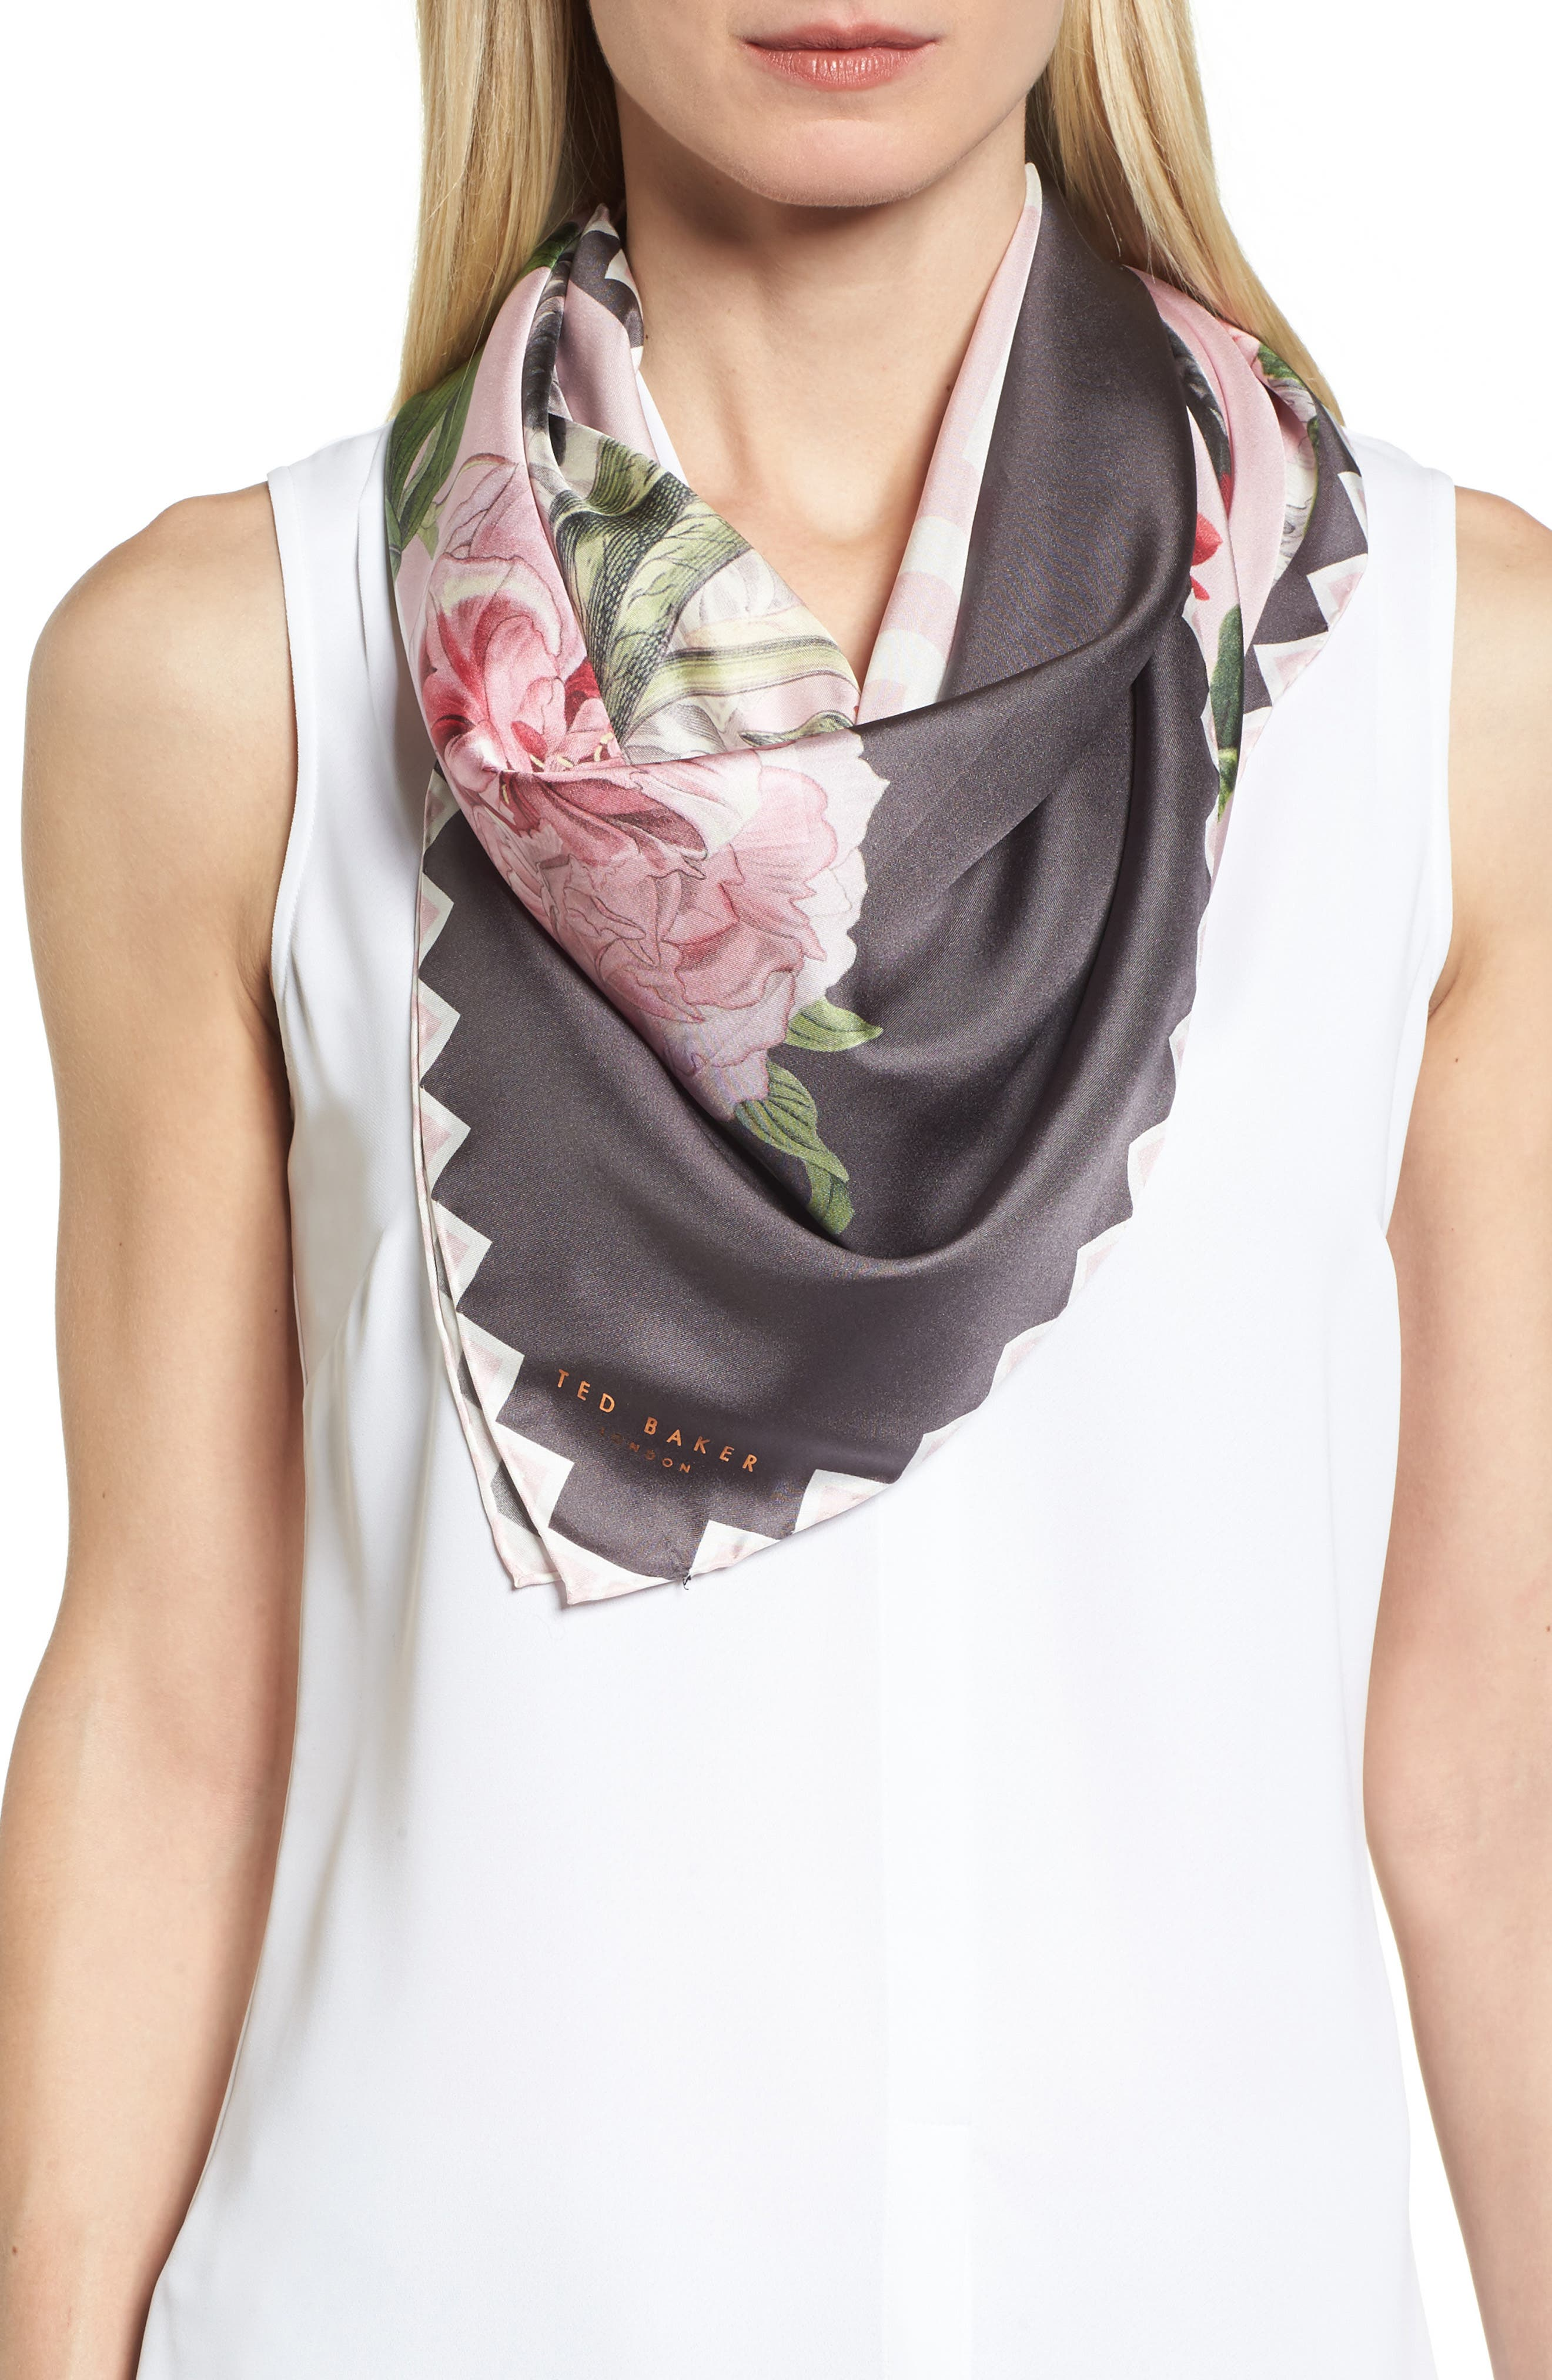 Modal Scarf - Natives I by St. James Whitting St James Whitting PHtS8P74gZ